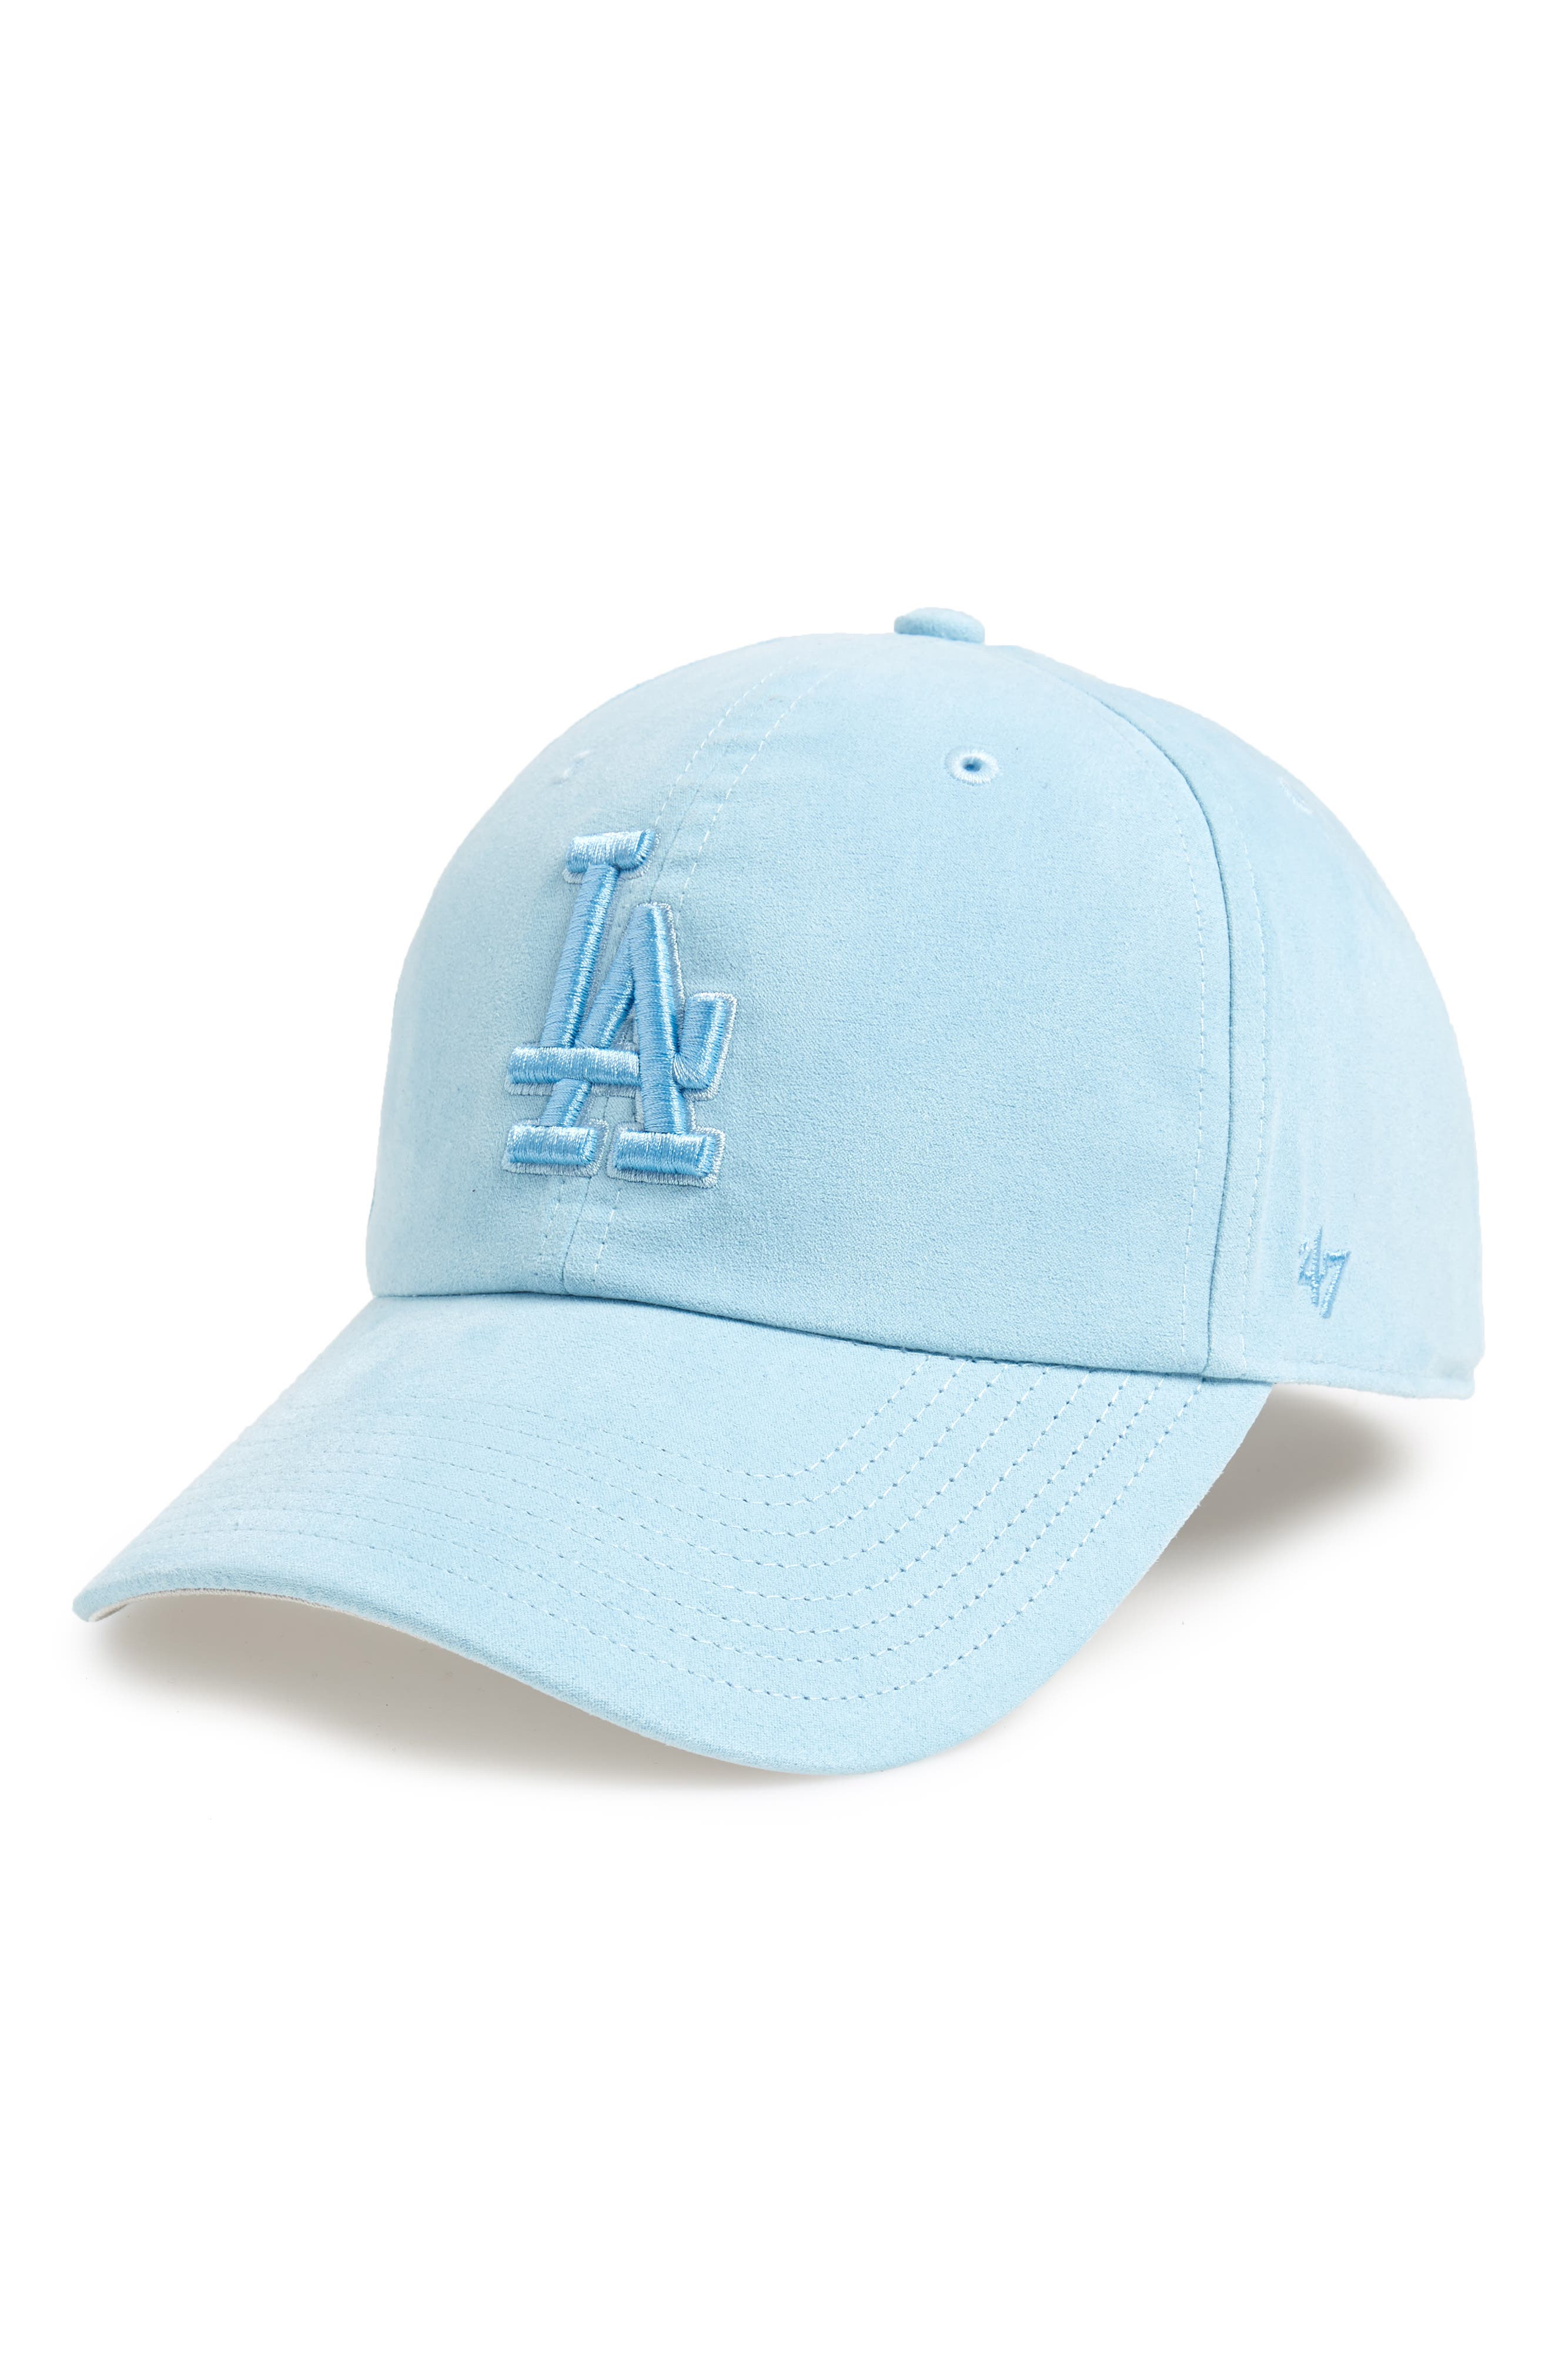 Ultrabasic Clean Up Los Angeles Dodgers Baseball Cap,                         Main,                         color, 400